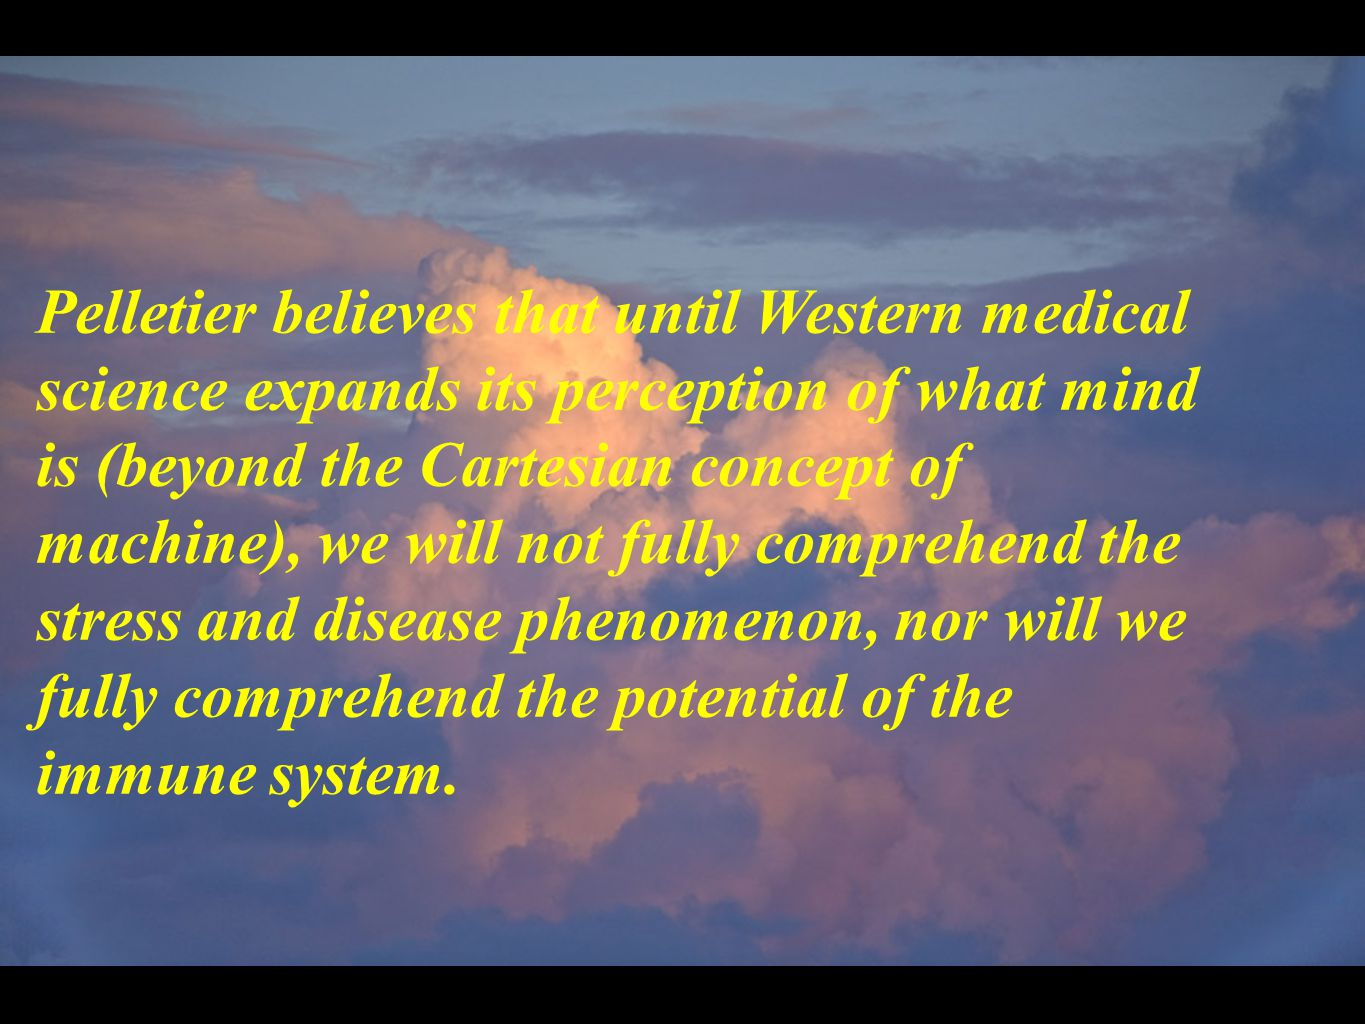 Pelletier believes that until Western medical science expands its perception of what mind is (beyond the Cartesian concept of machine), we will not fu